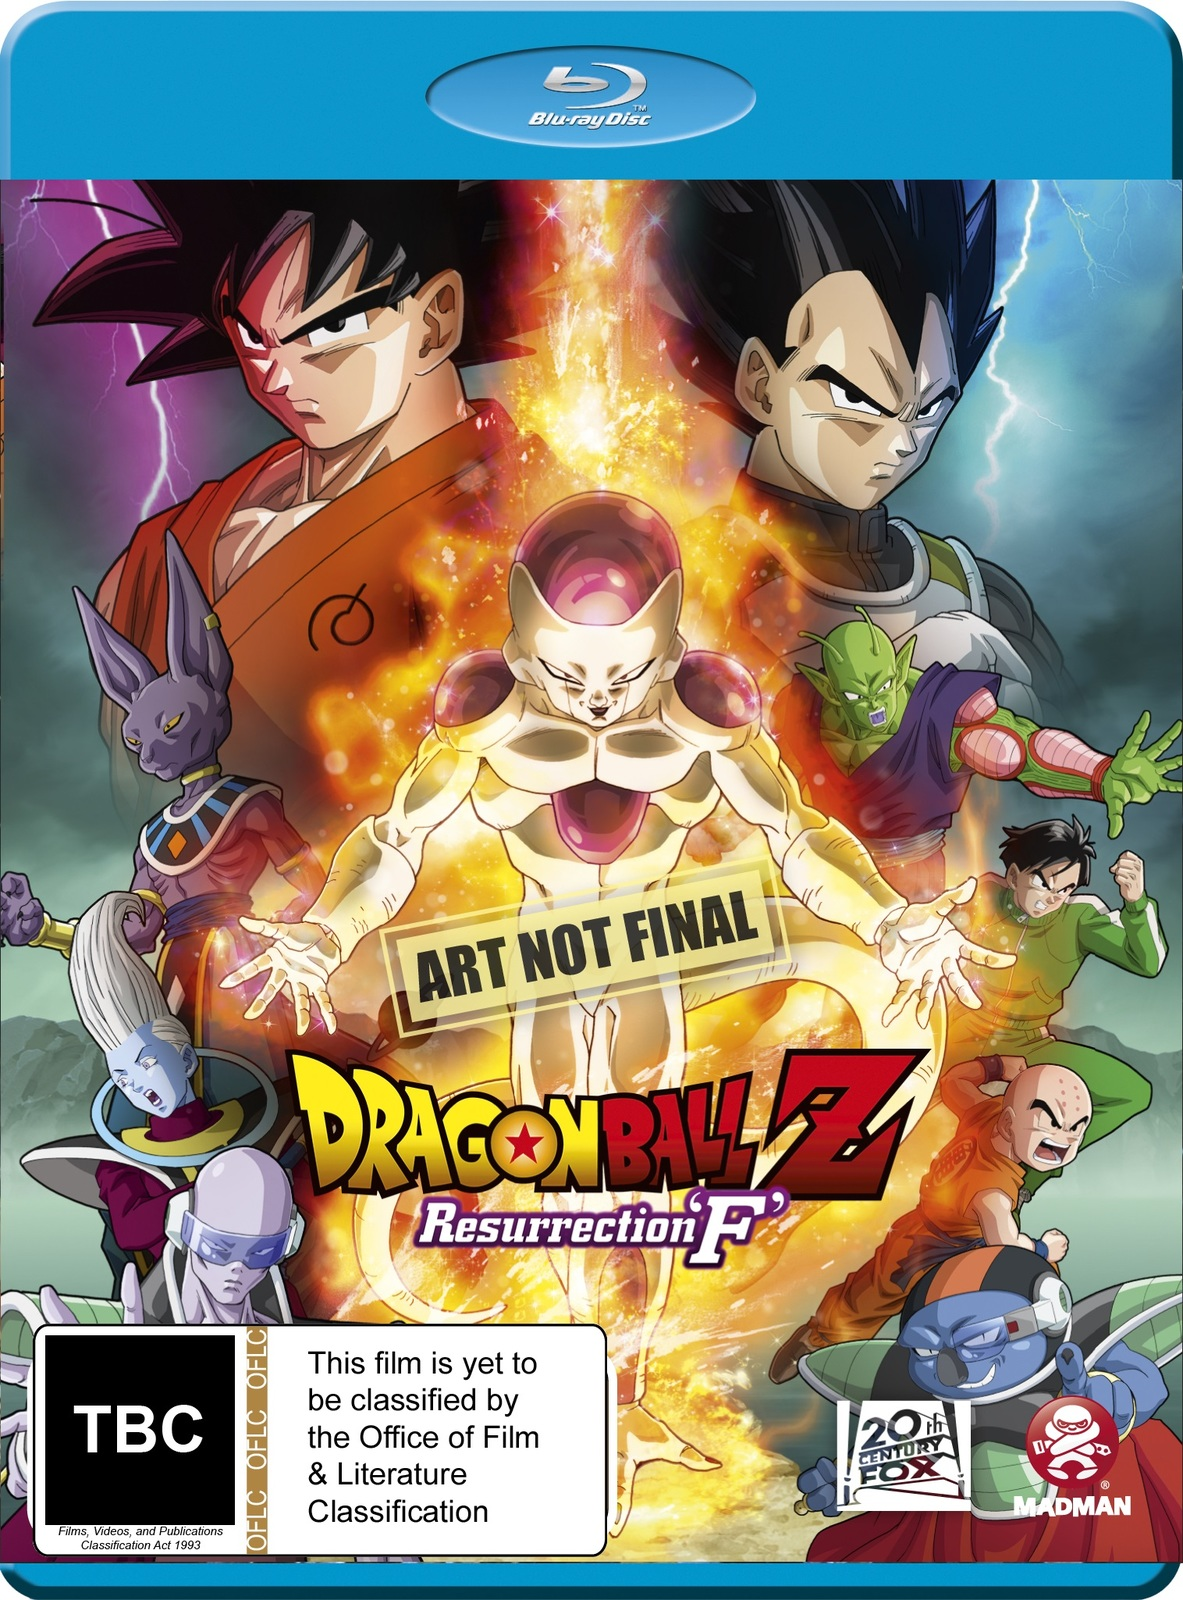 Dragon Ball Z: Resurrection 'F' on Blu-ray image